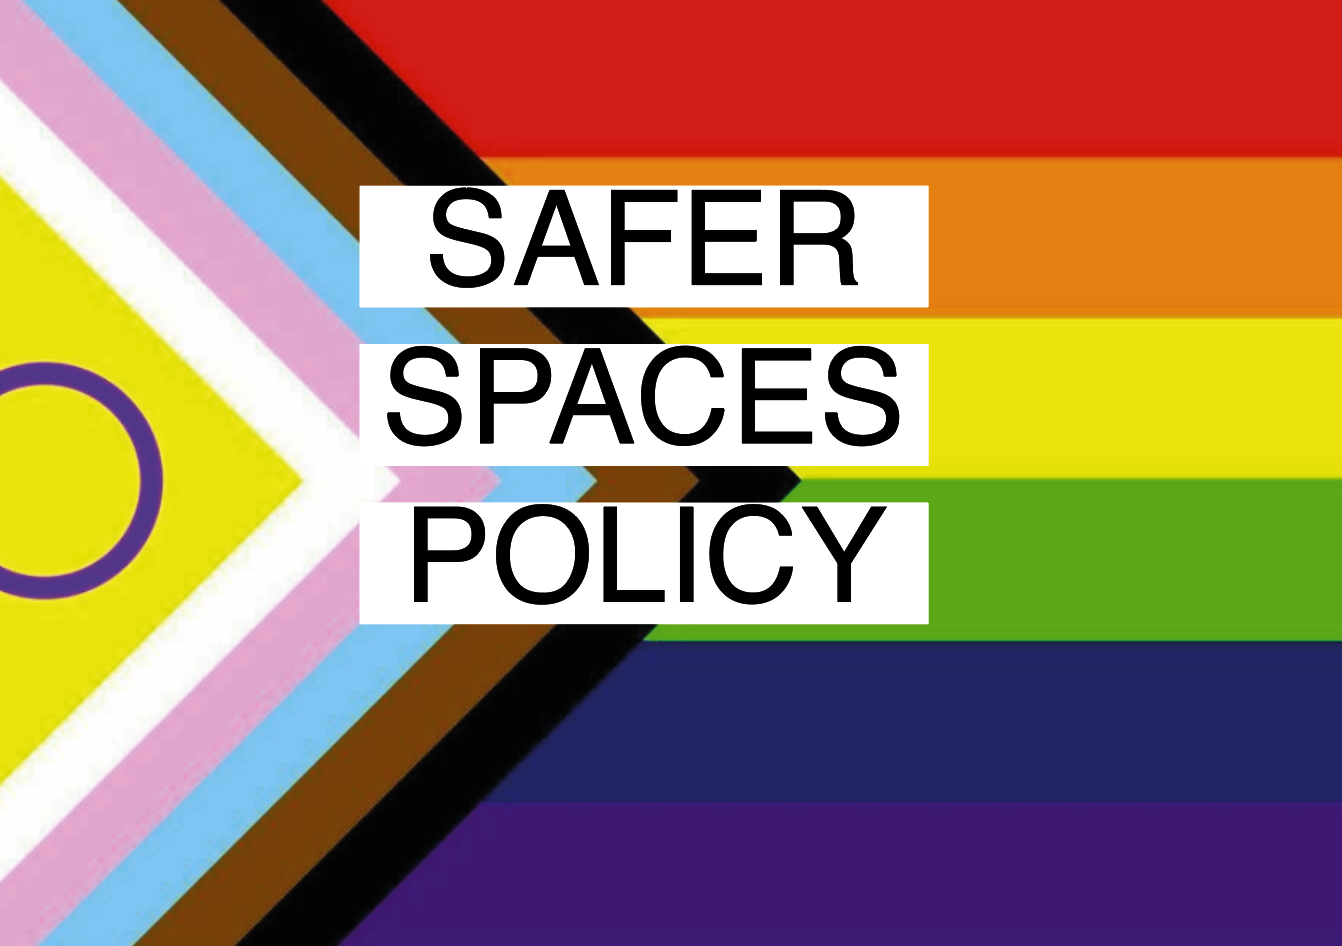 Safer Spaces Policy